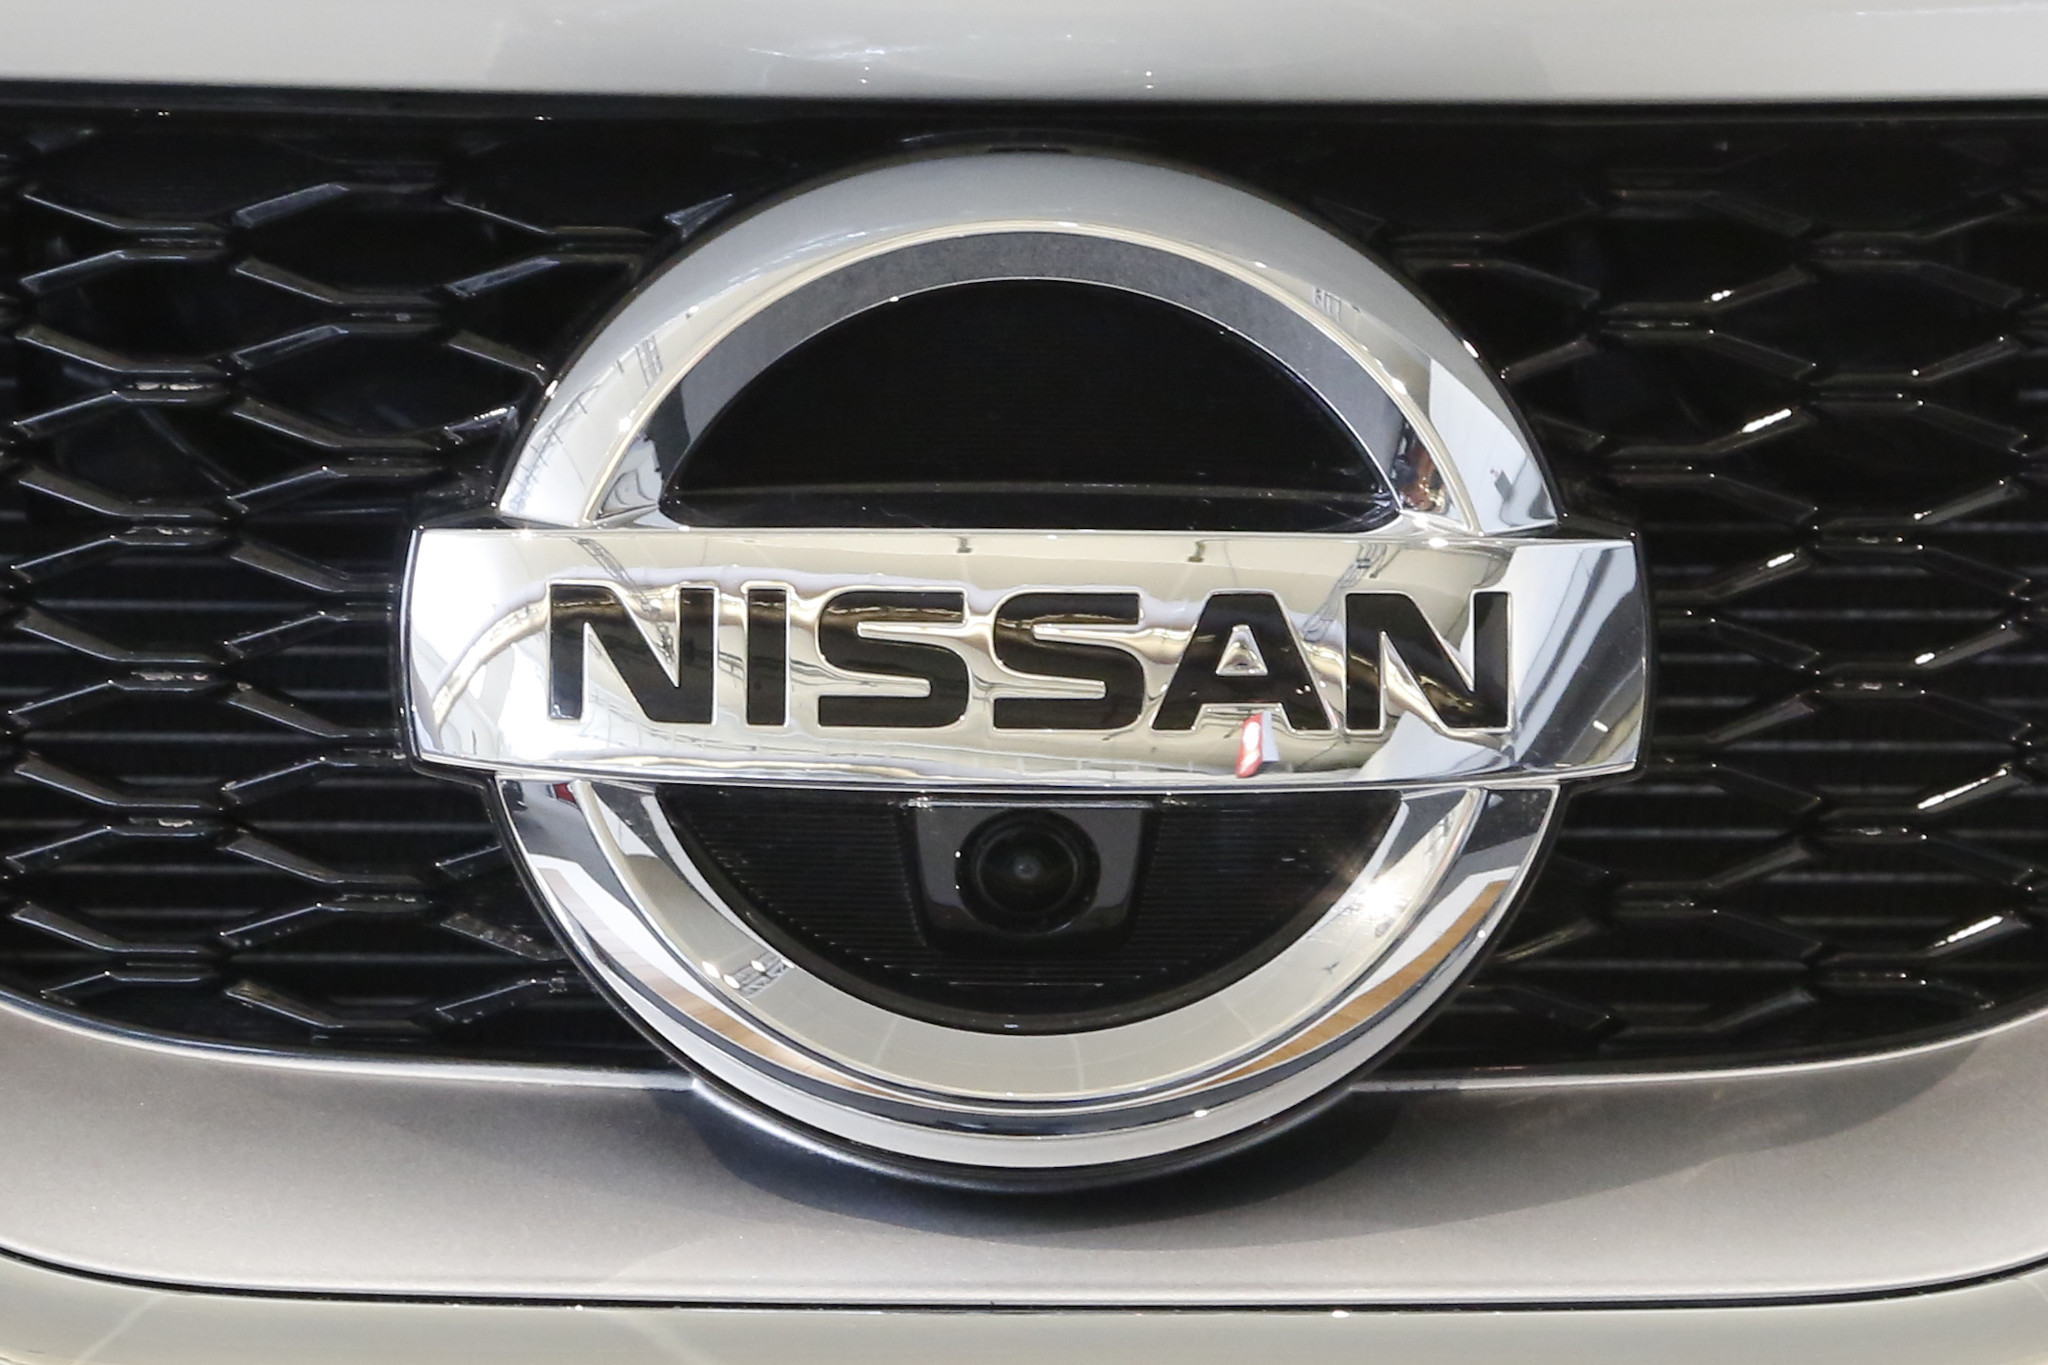 Nissan recalls more than 120,000 vehicles after fluid leaks cause fires